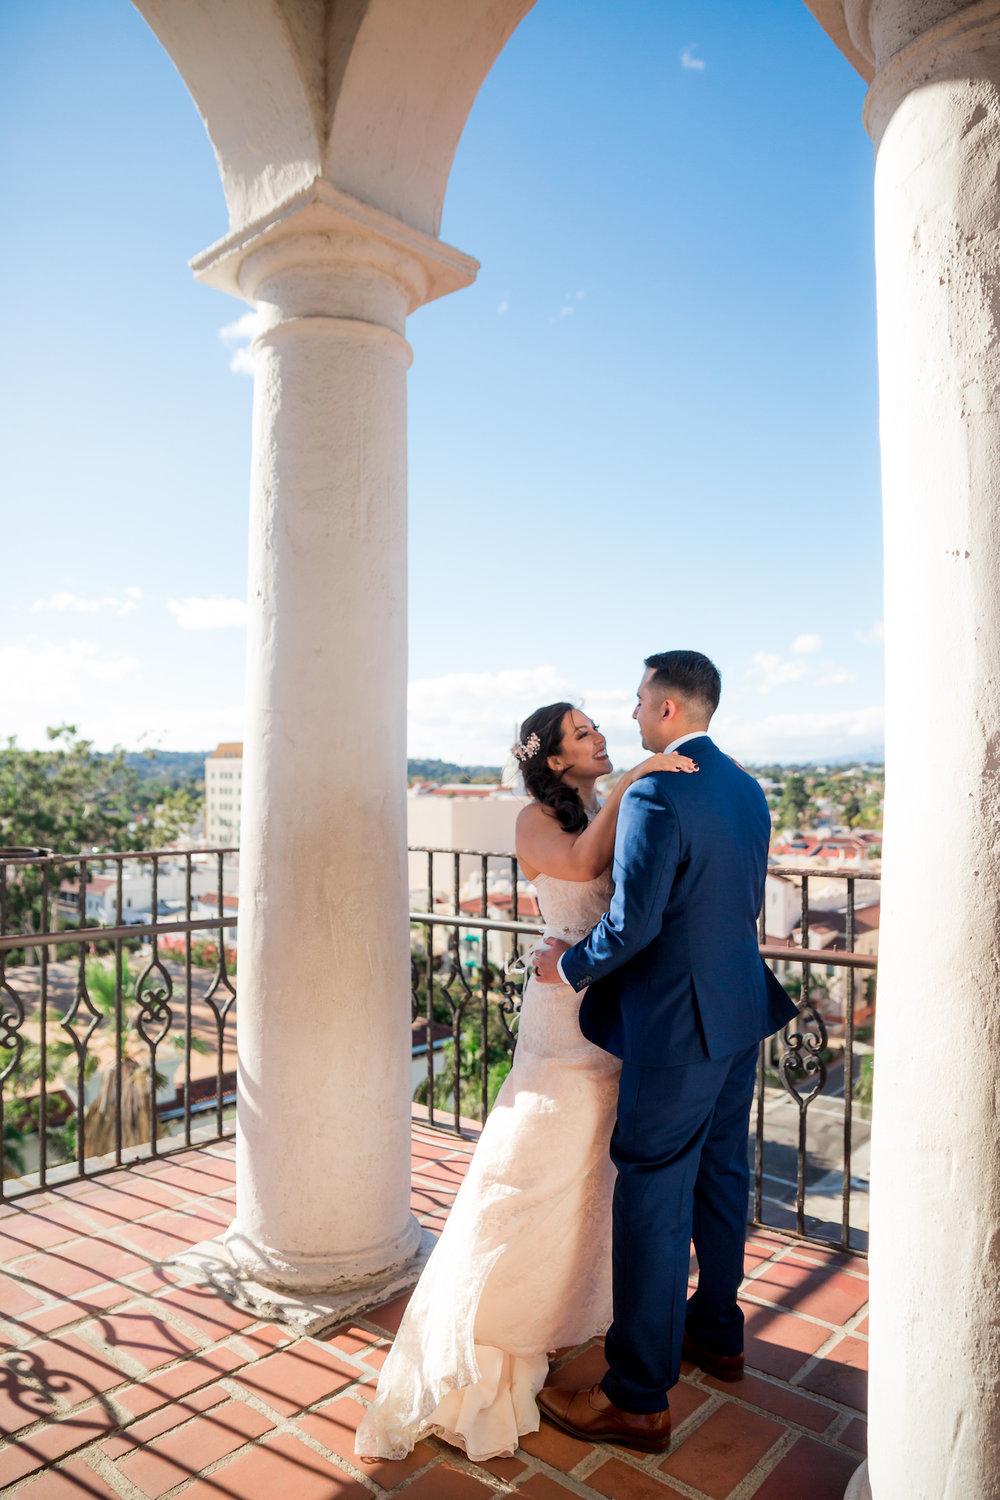 For couples willing to make the climb up to the clocktower, the reward is sweeping panoramic views.